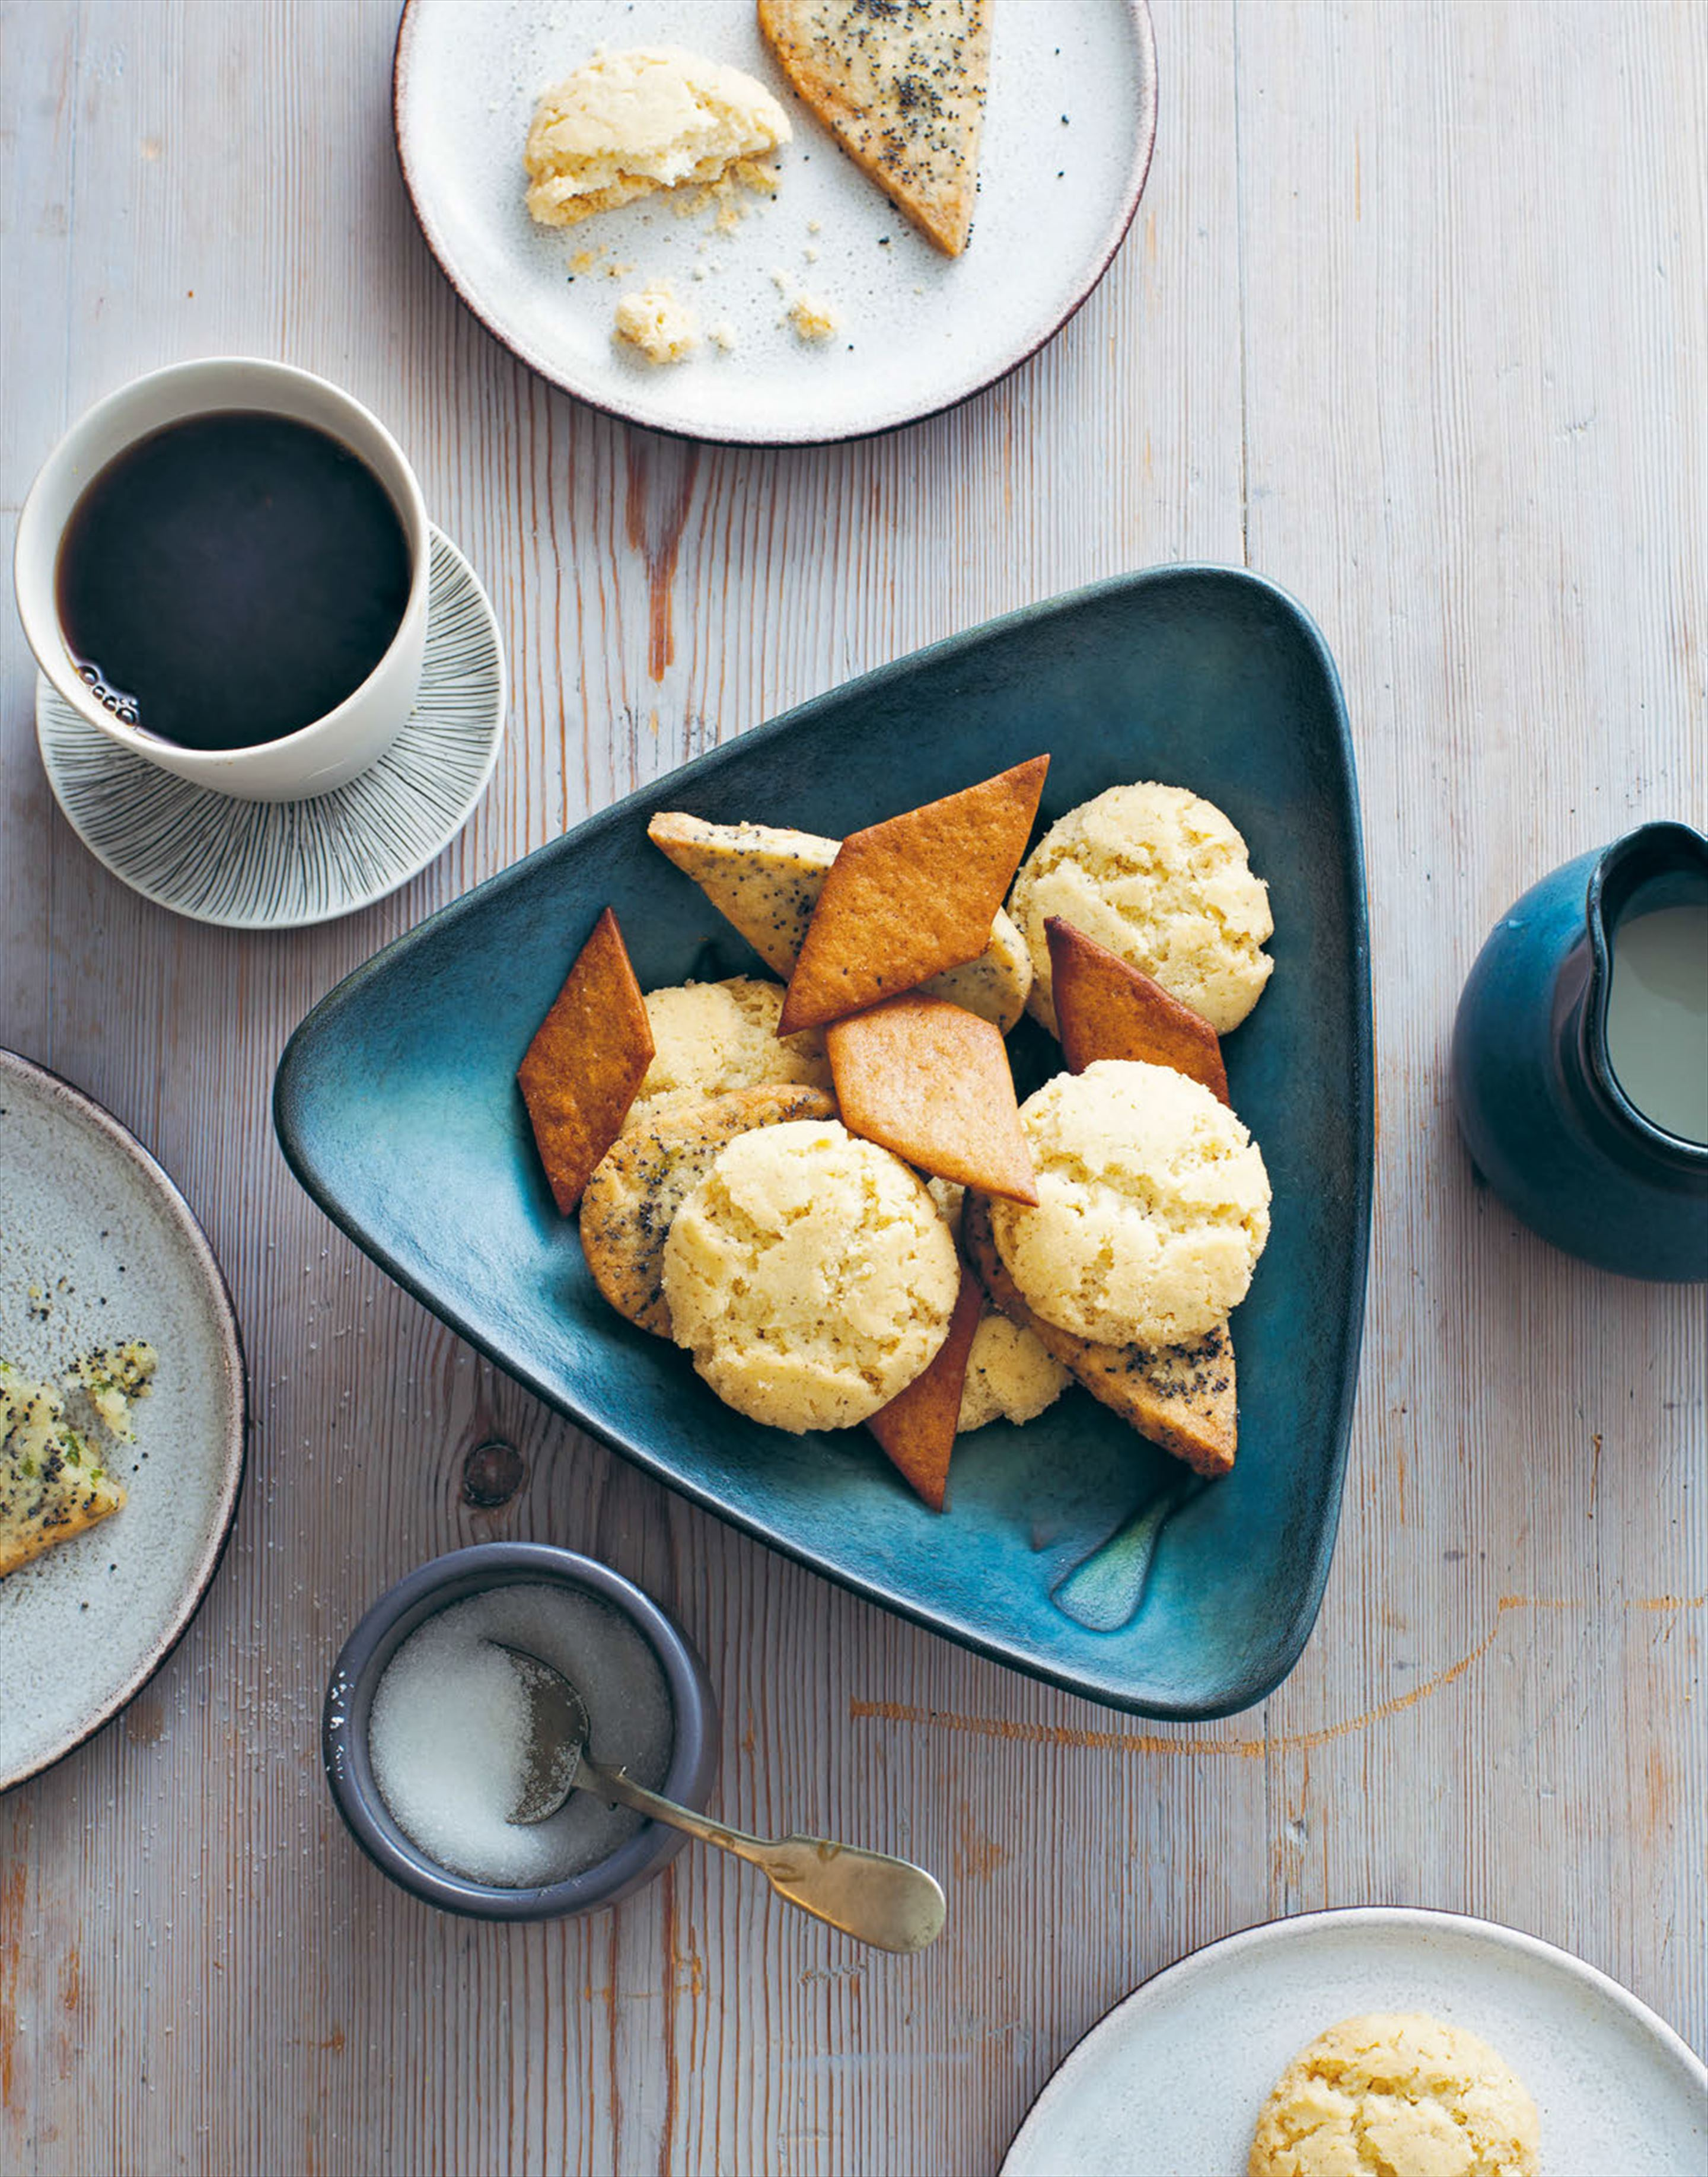 Lemon verbena & poppy seed cookies